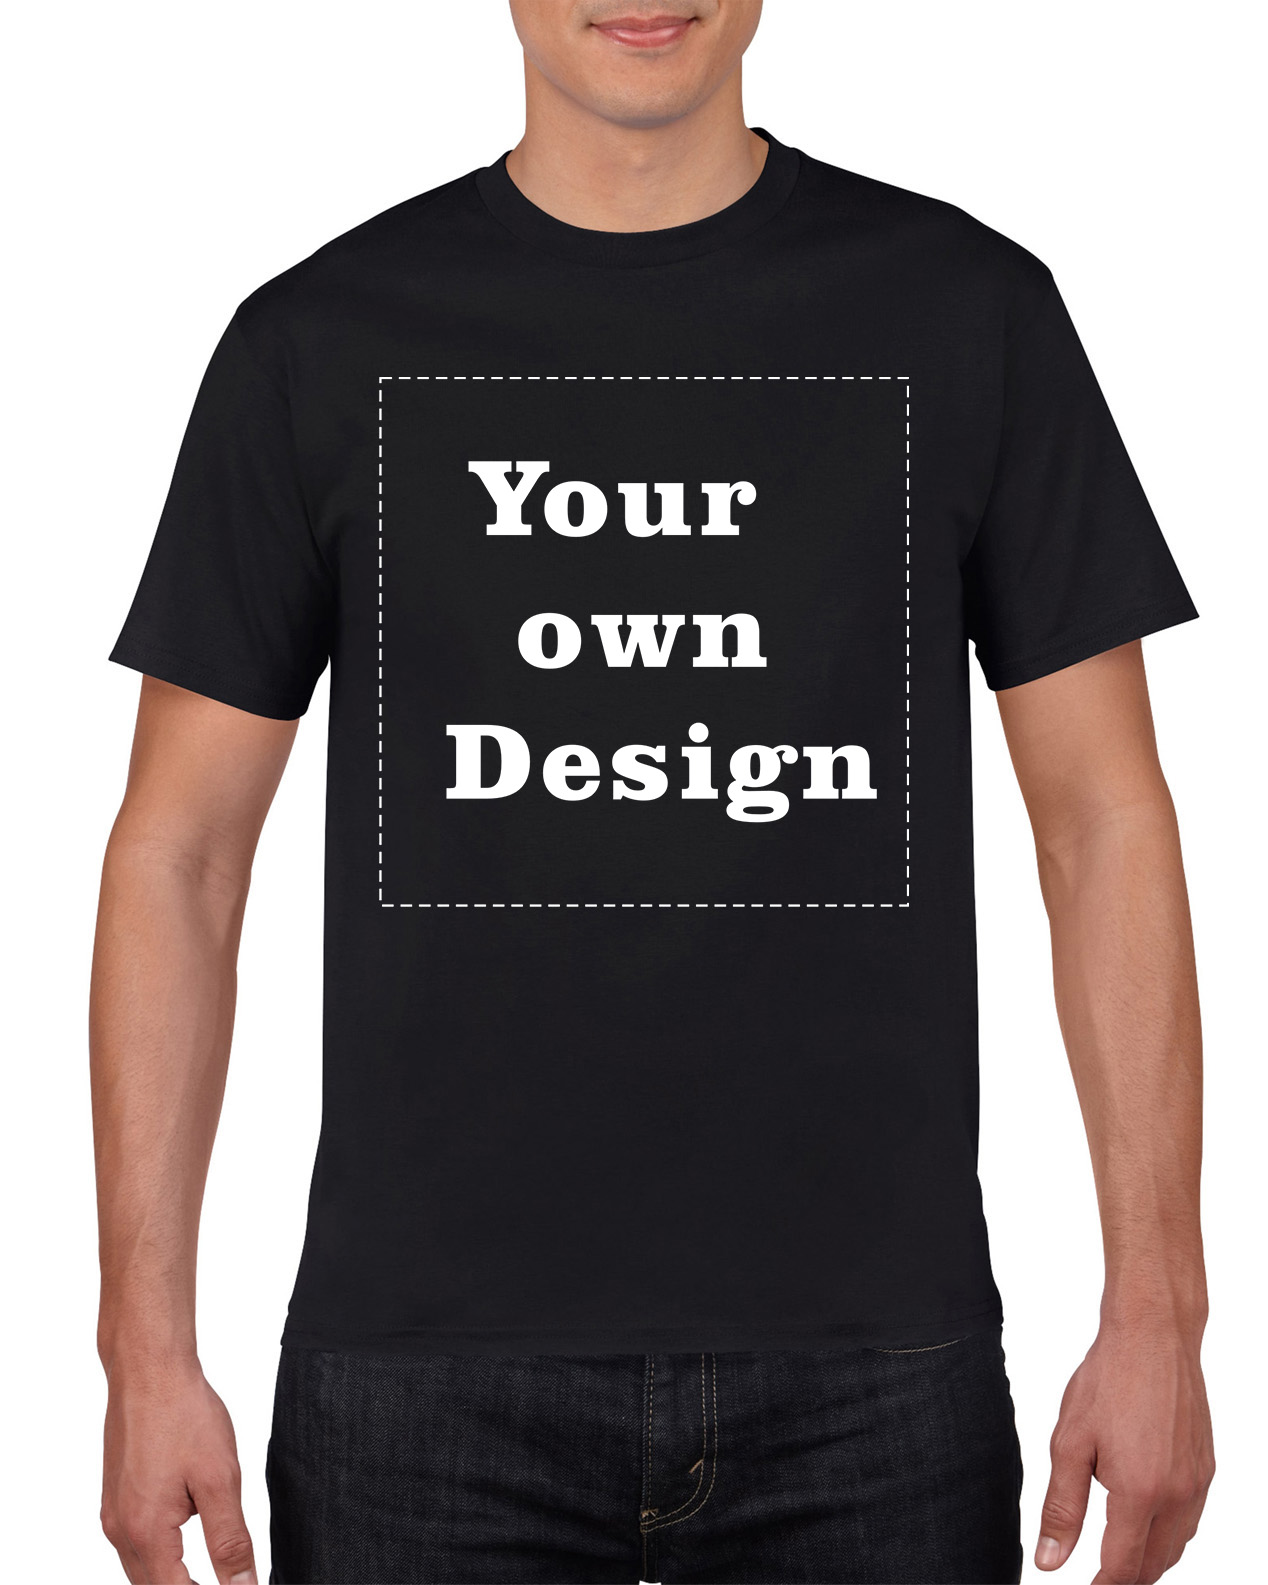 customized black men 39 s t shirt print your own design high